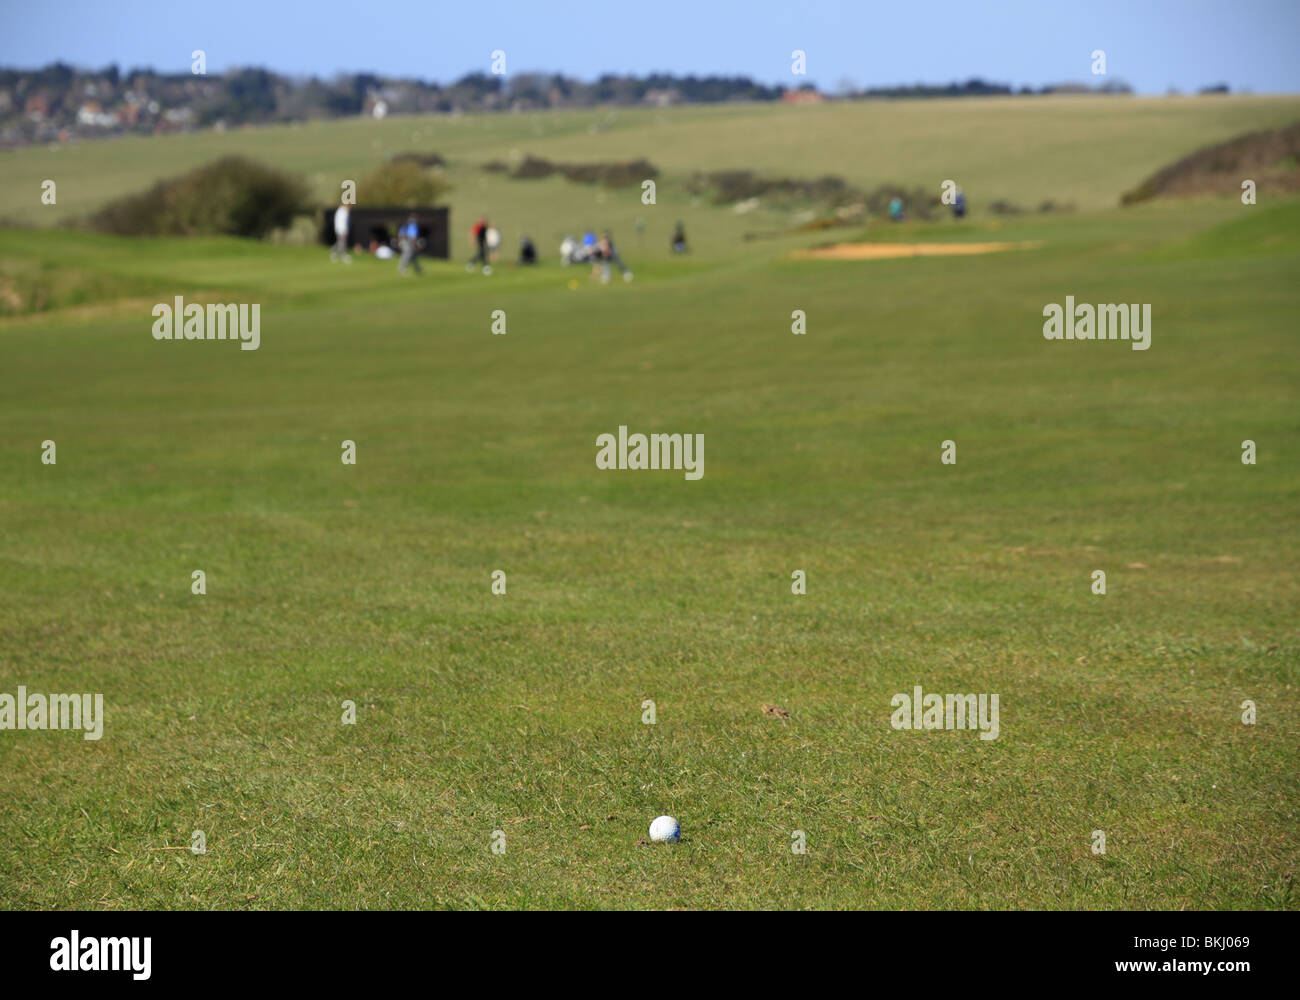 A golfers Tee Shot finds the fairway at Eastbourne Downs Golf Club, East Sussex, England - Stock Image